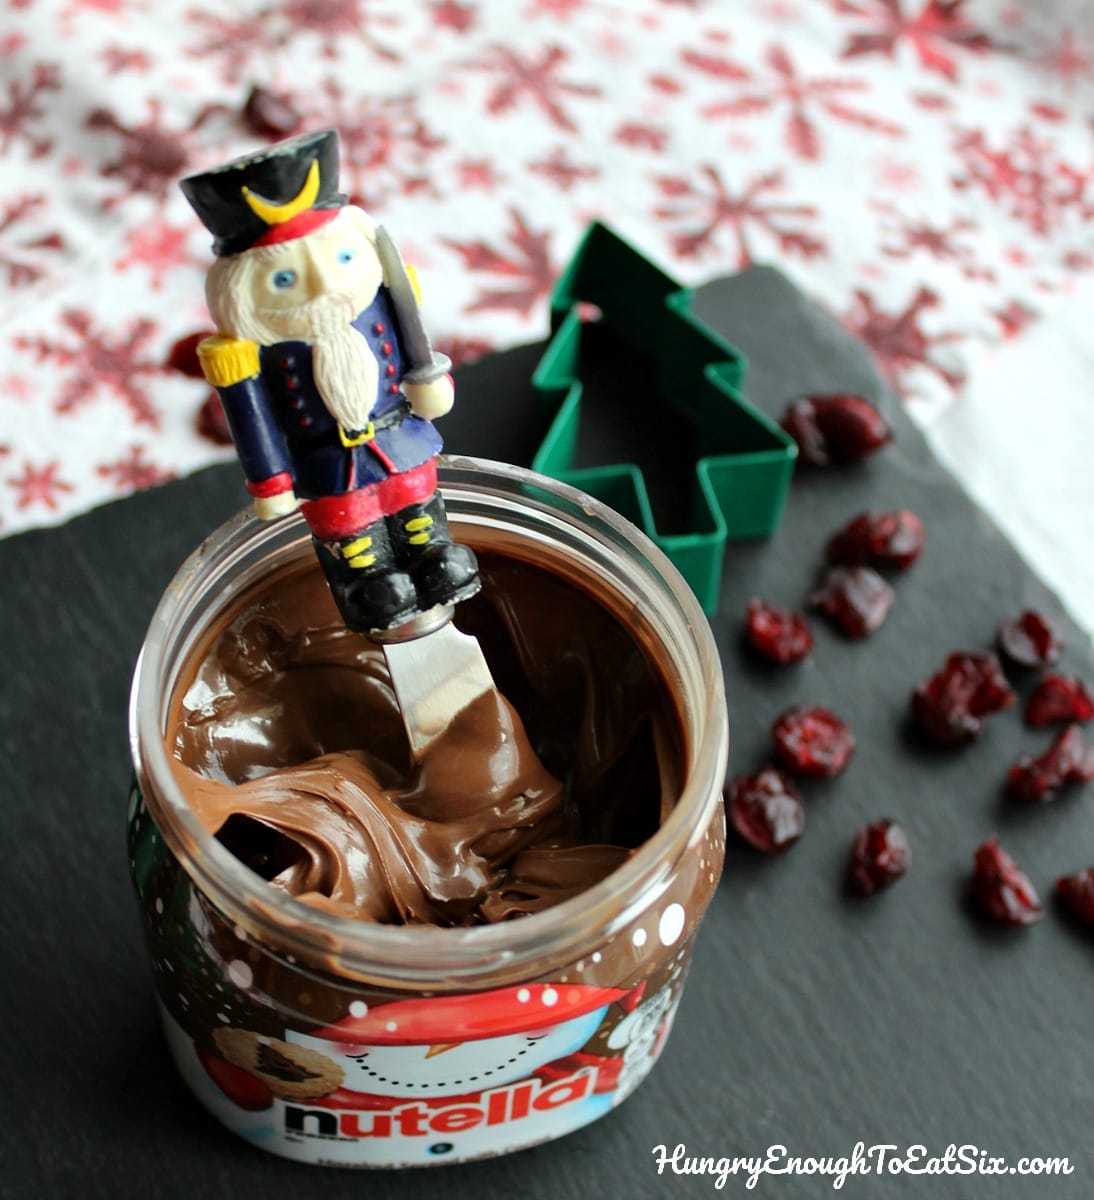 Jar of Nutella with a nutcracker topped spreader